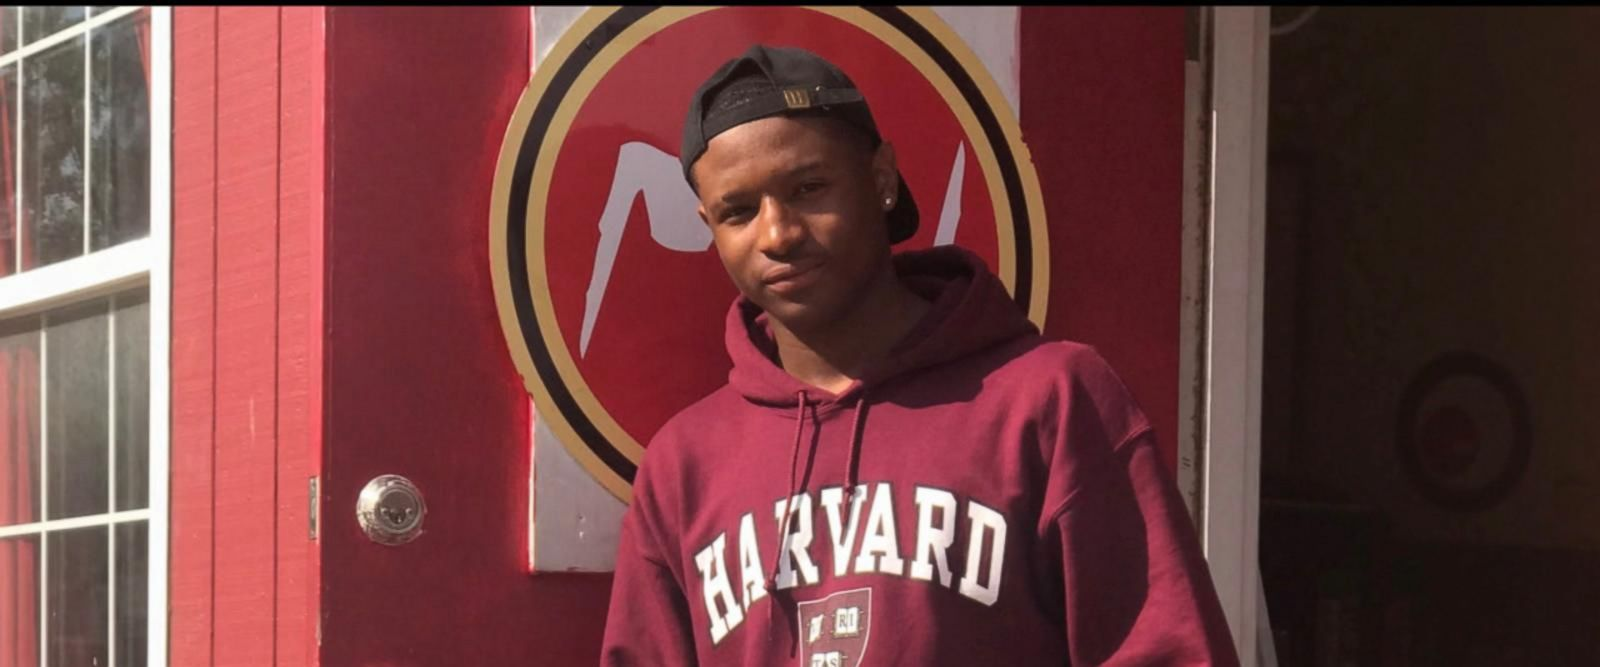 VIDEO: Student who went from homeless to Harvard credits writing program